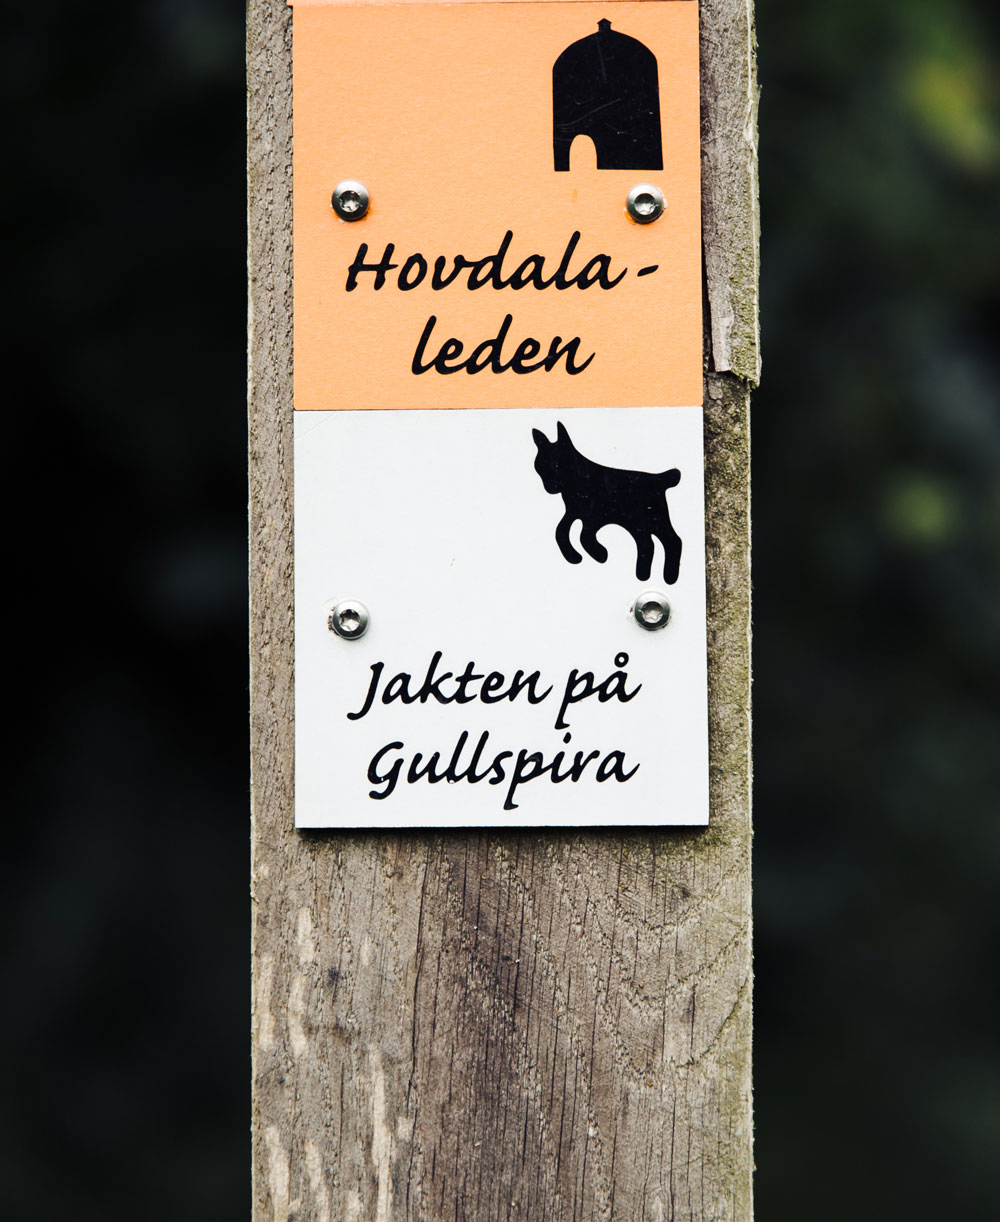 Hiking in Skåne: Hovdala nature area - jakten på Gullspira